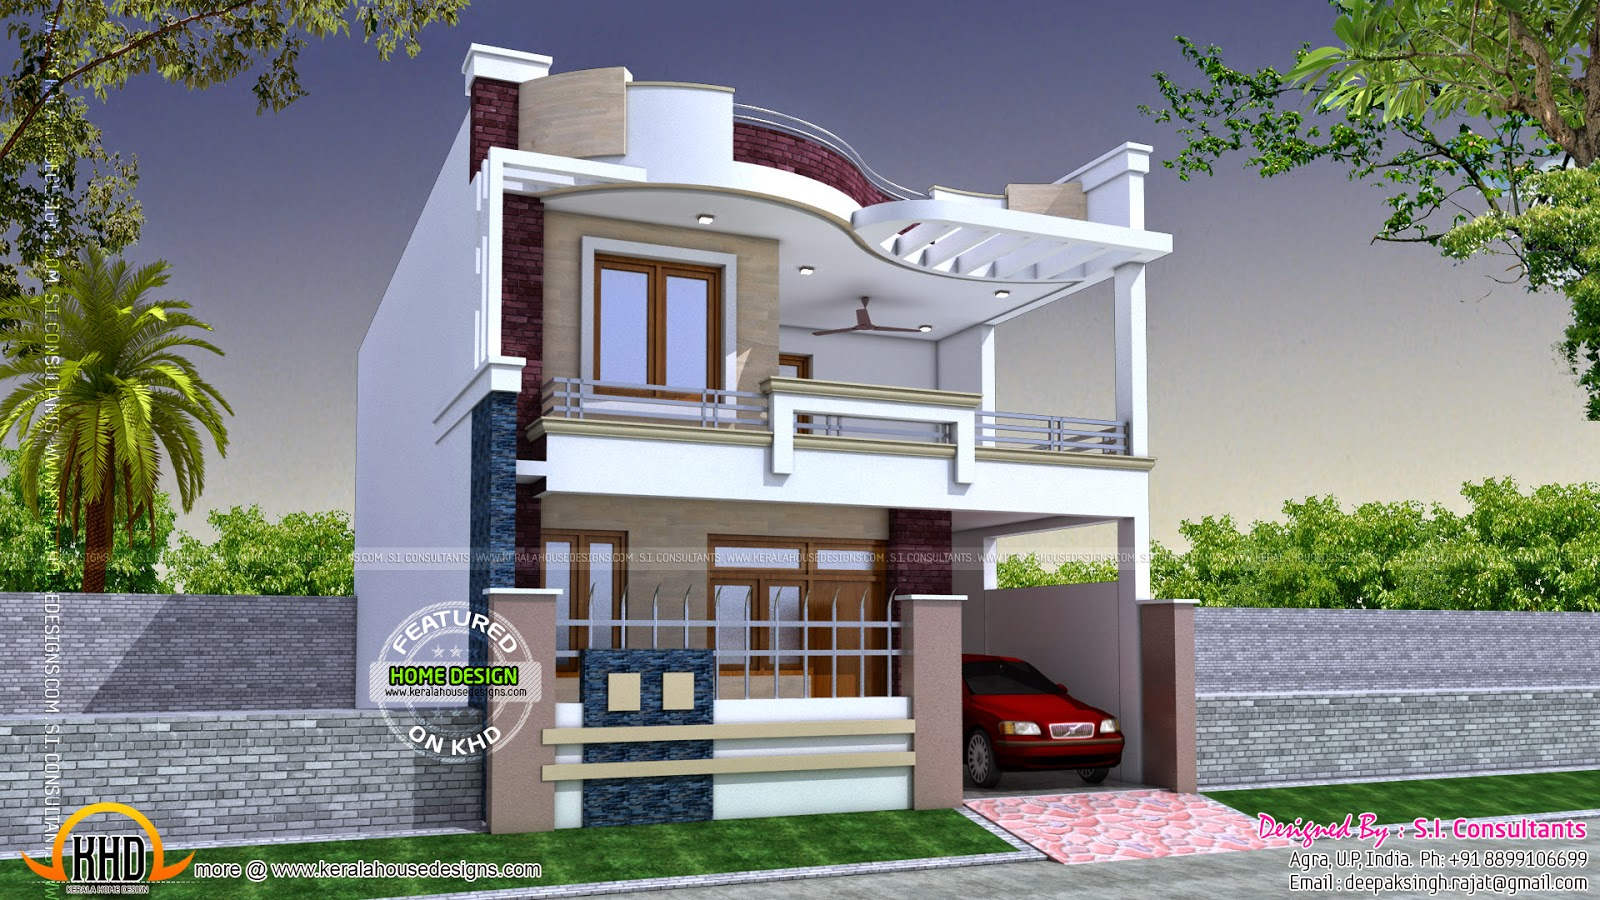 Modern indian home design kerala home design and floor plans for Home architecture design india